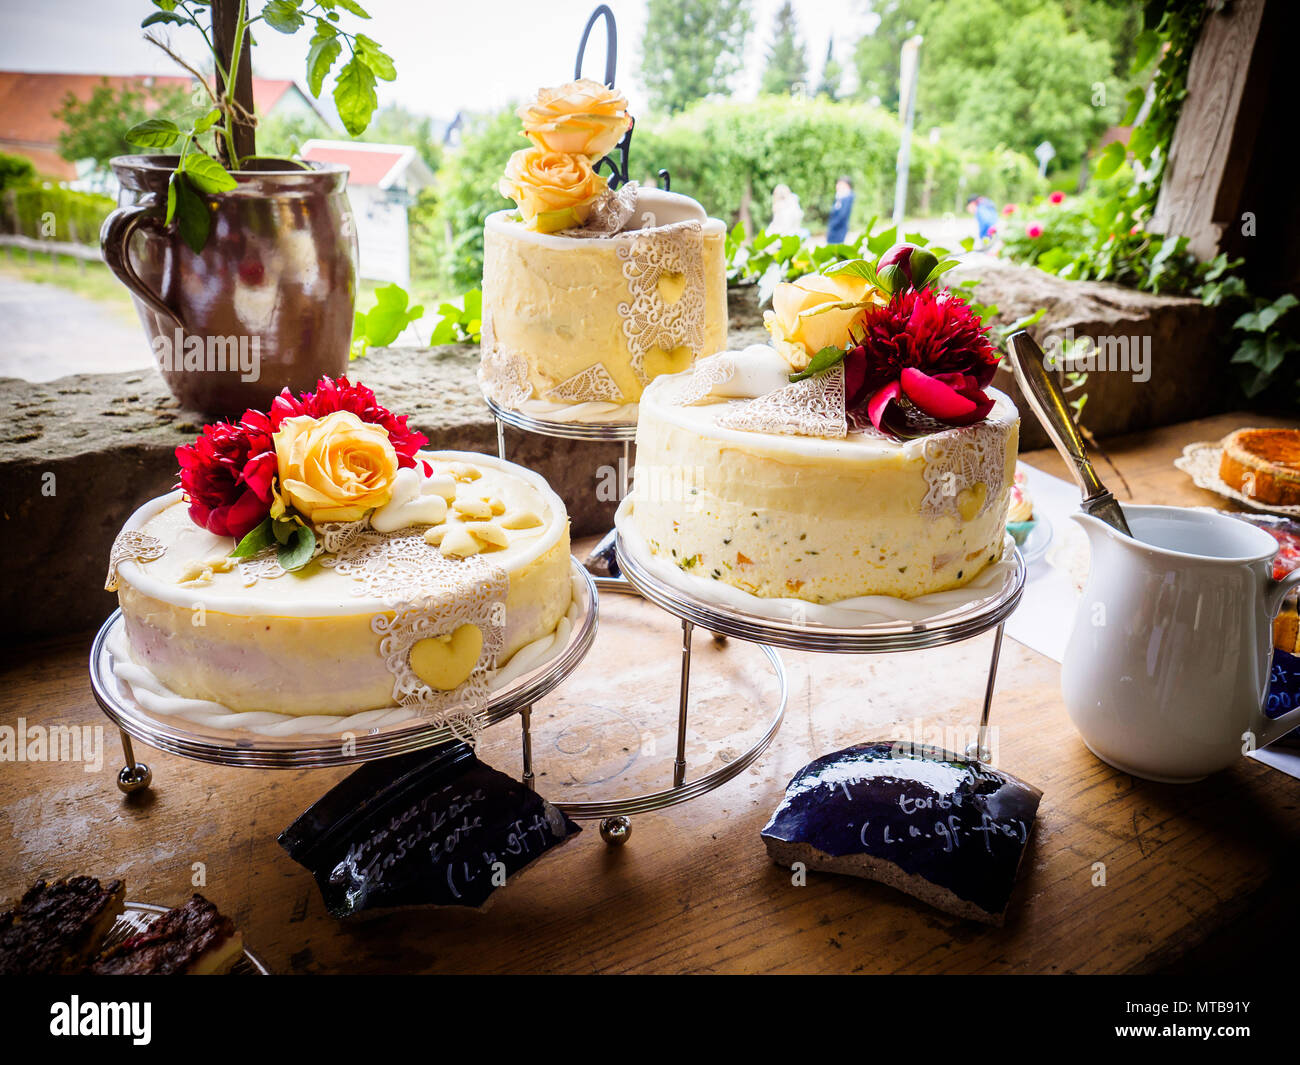 White wedding cake and sweets decorated with natural flowers - Stock Image